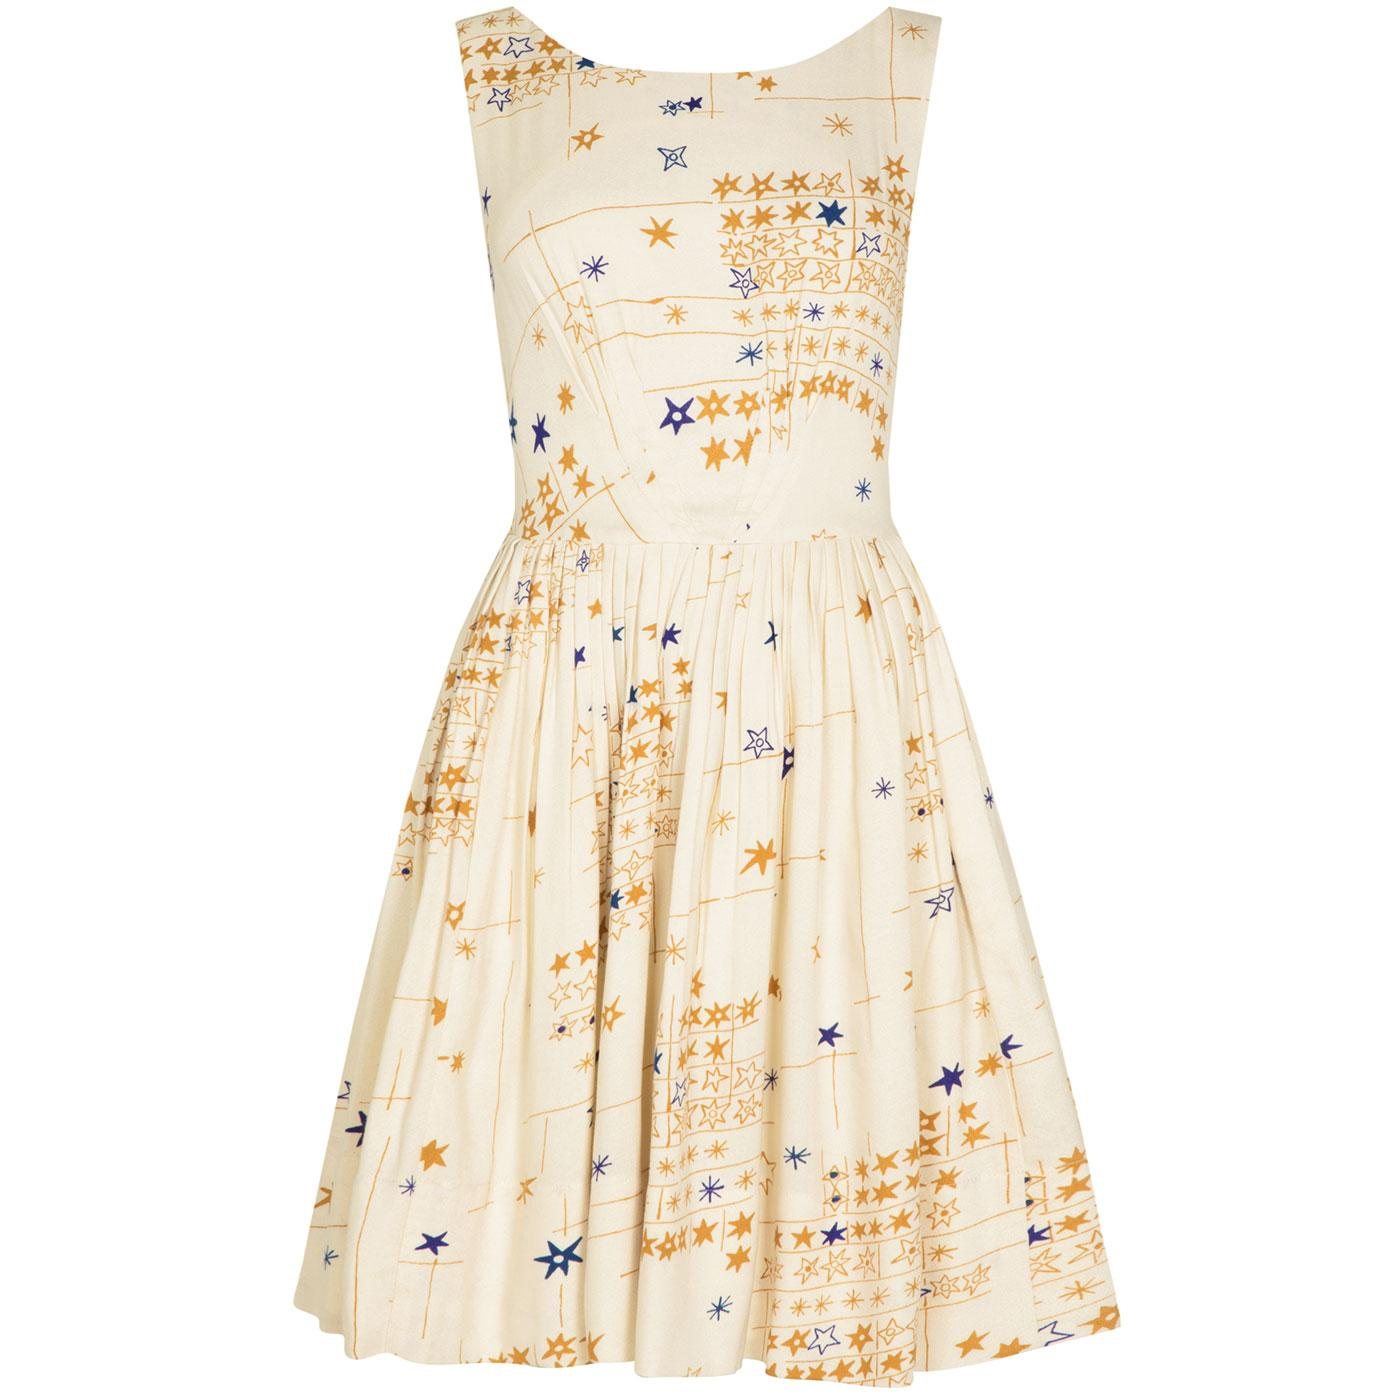 Abigail EMILY AND FIN Retro Starry Nights Dress